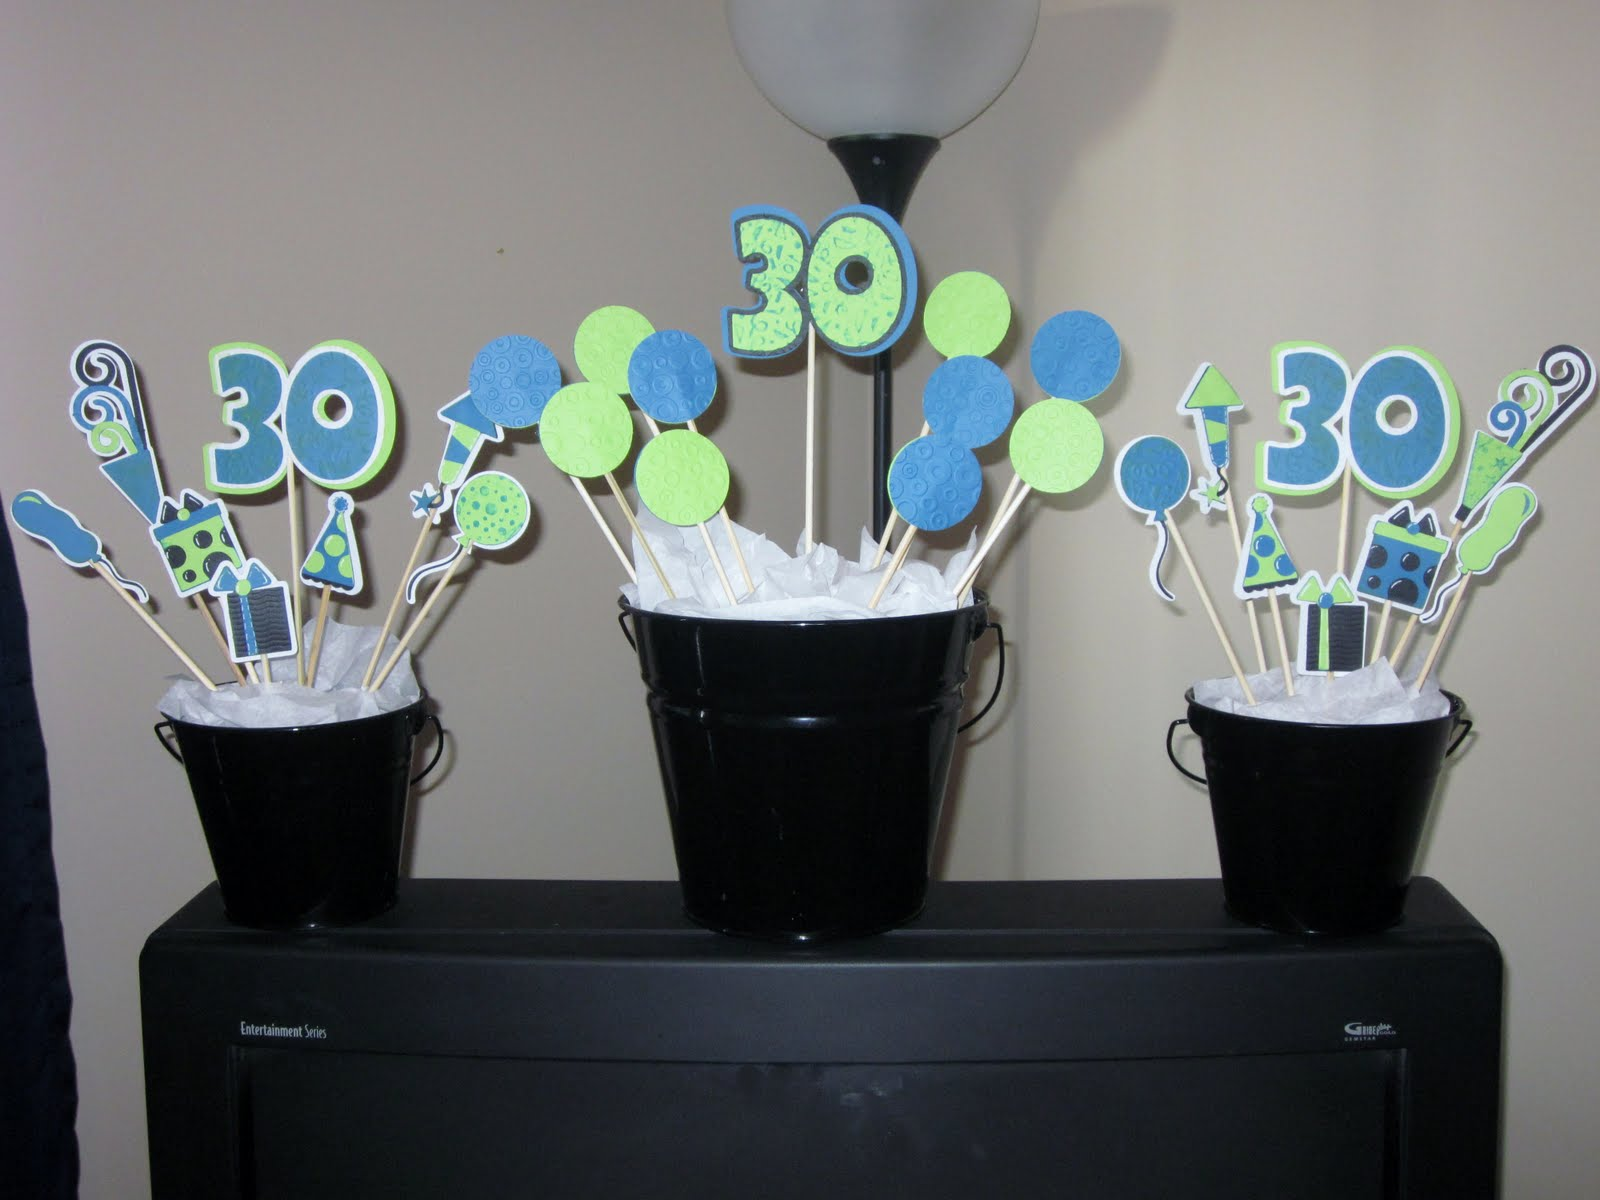 Jamiek711 designs 30th birthday decorations for 30th party decoration ideas